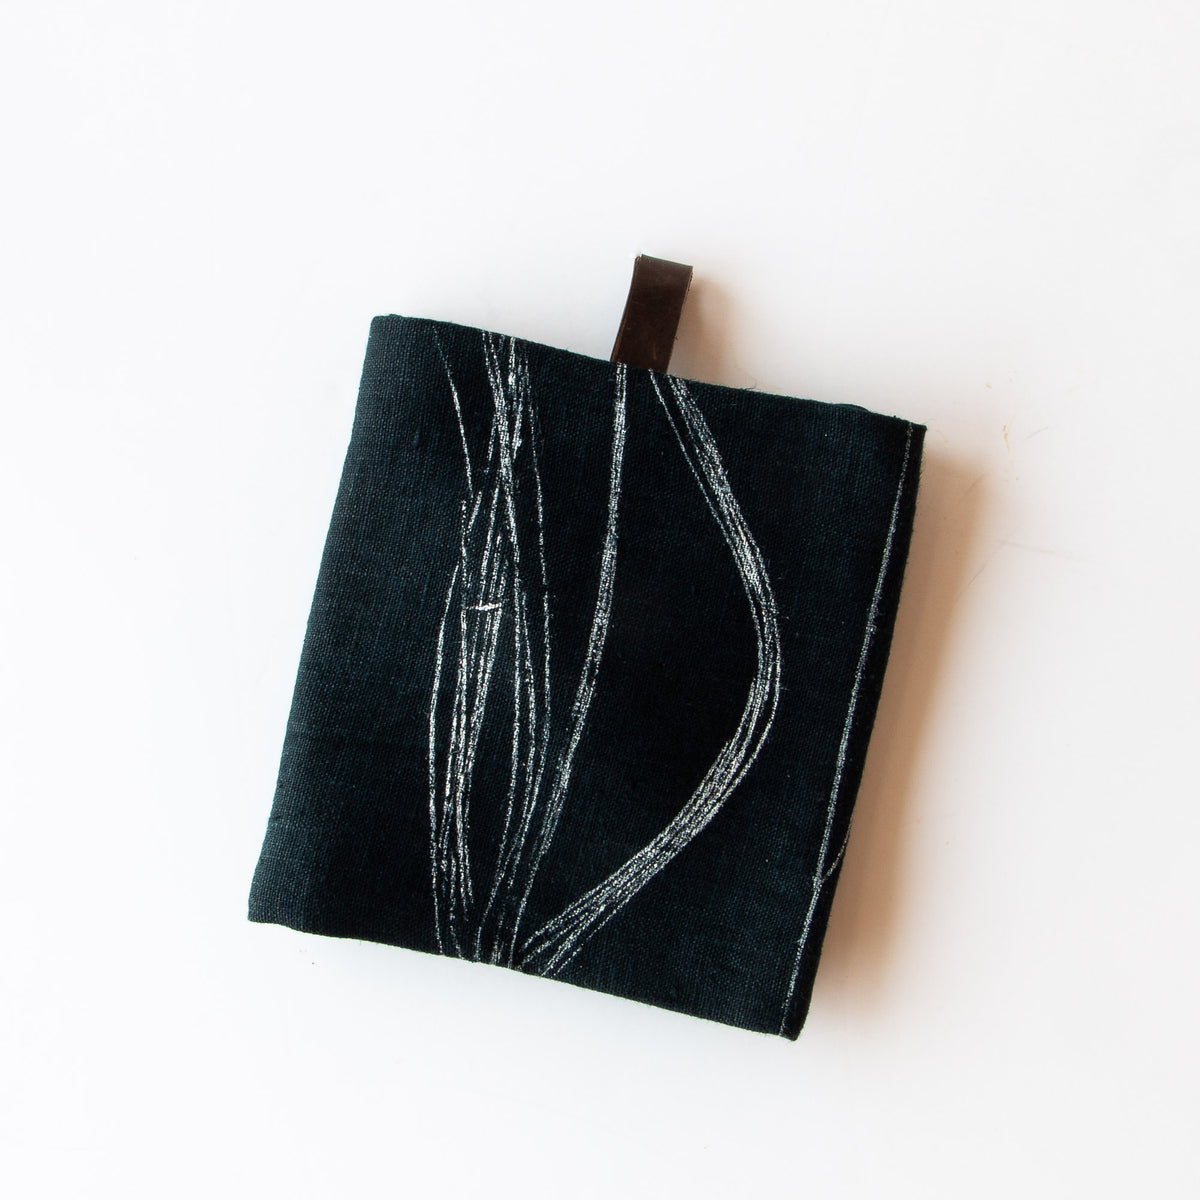 Weeds - Folded Handprinted 100% Linen Dish Cloth / Hand Towel - Sold by Chic & Basta